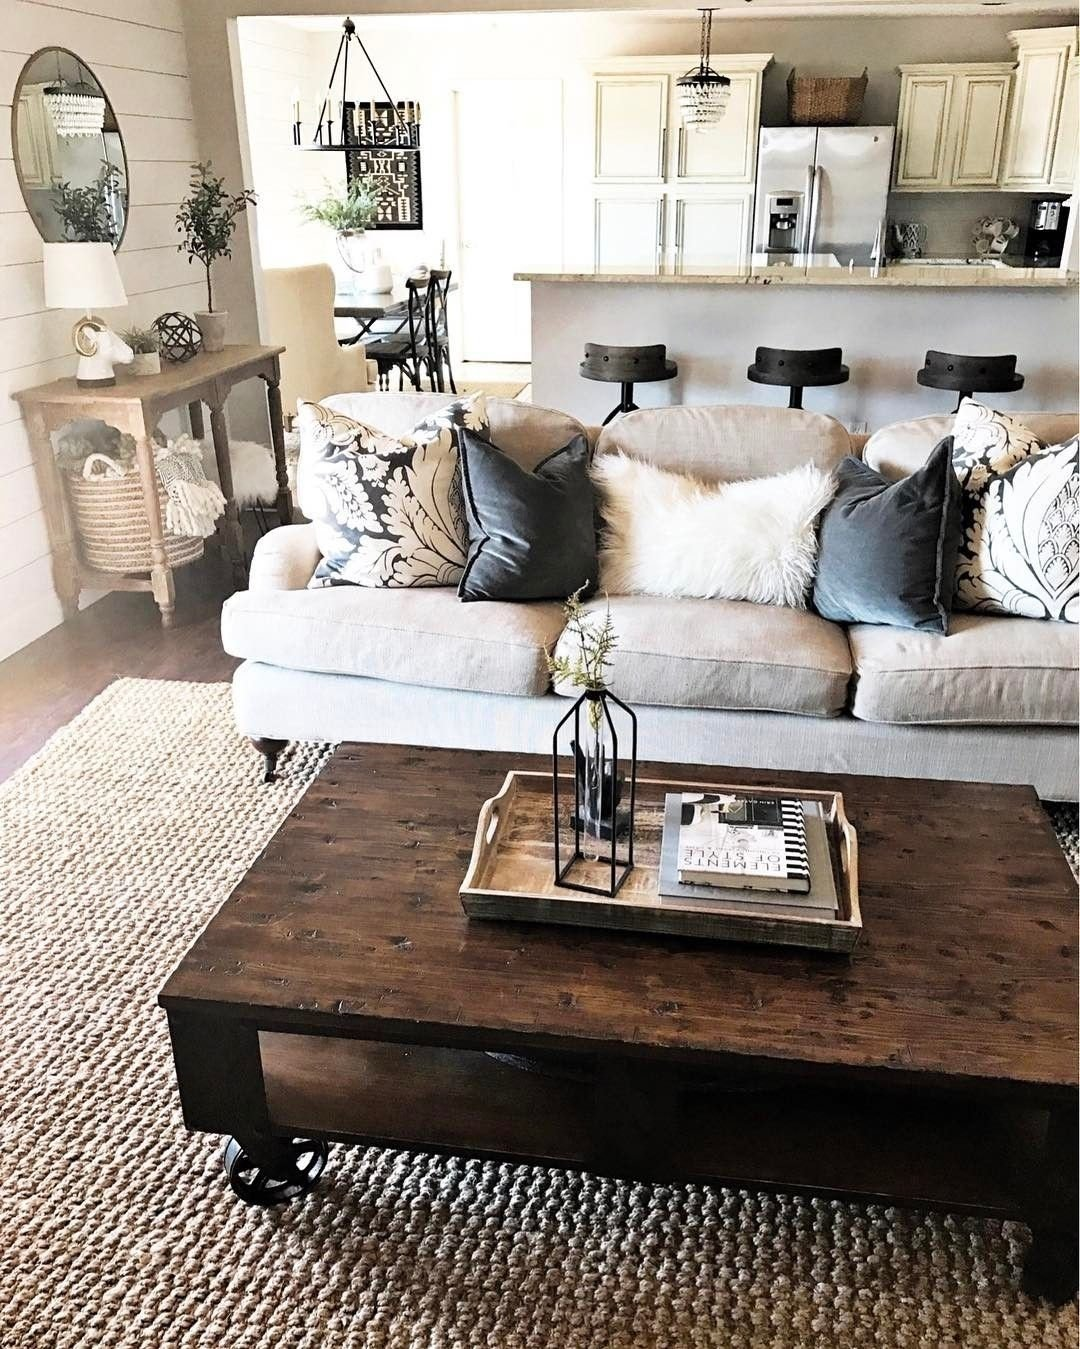 10 Lovable Rustic Decorating Ideas For Living Rooms rustic decor ideas for modern home rustic decor rustic decorating 2021